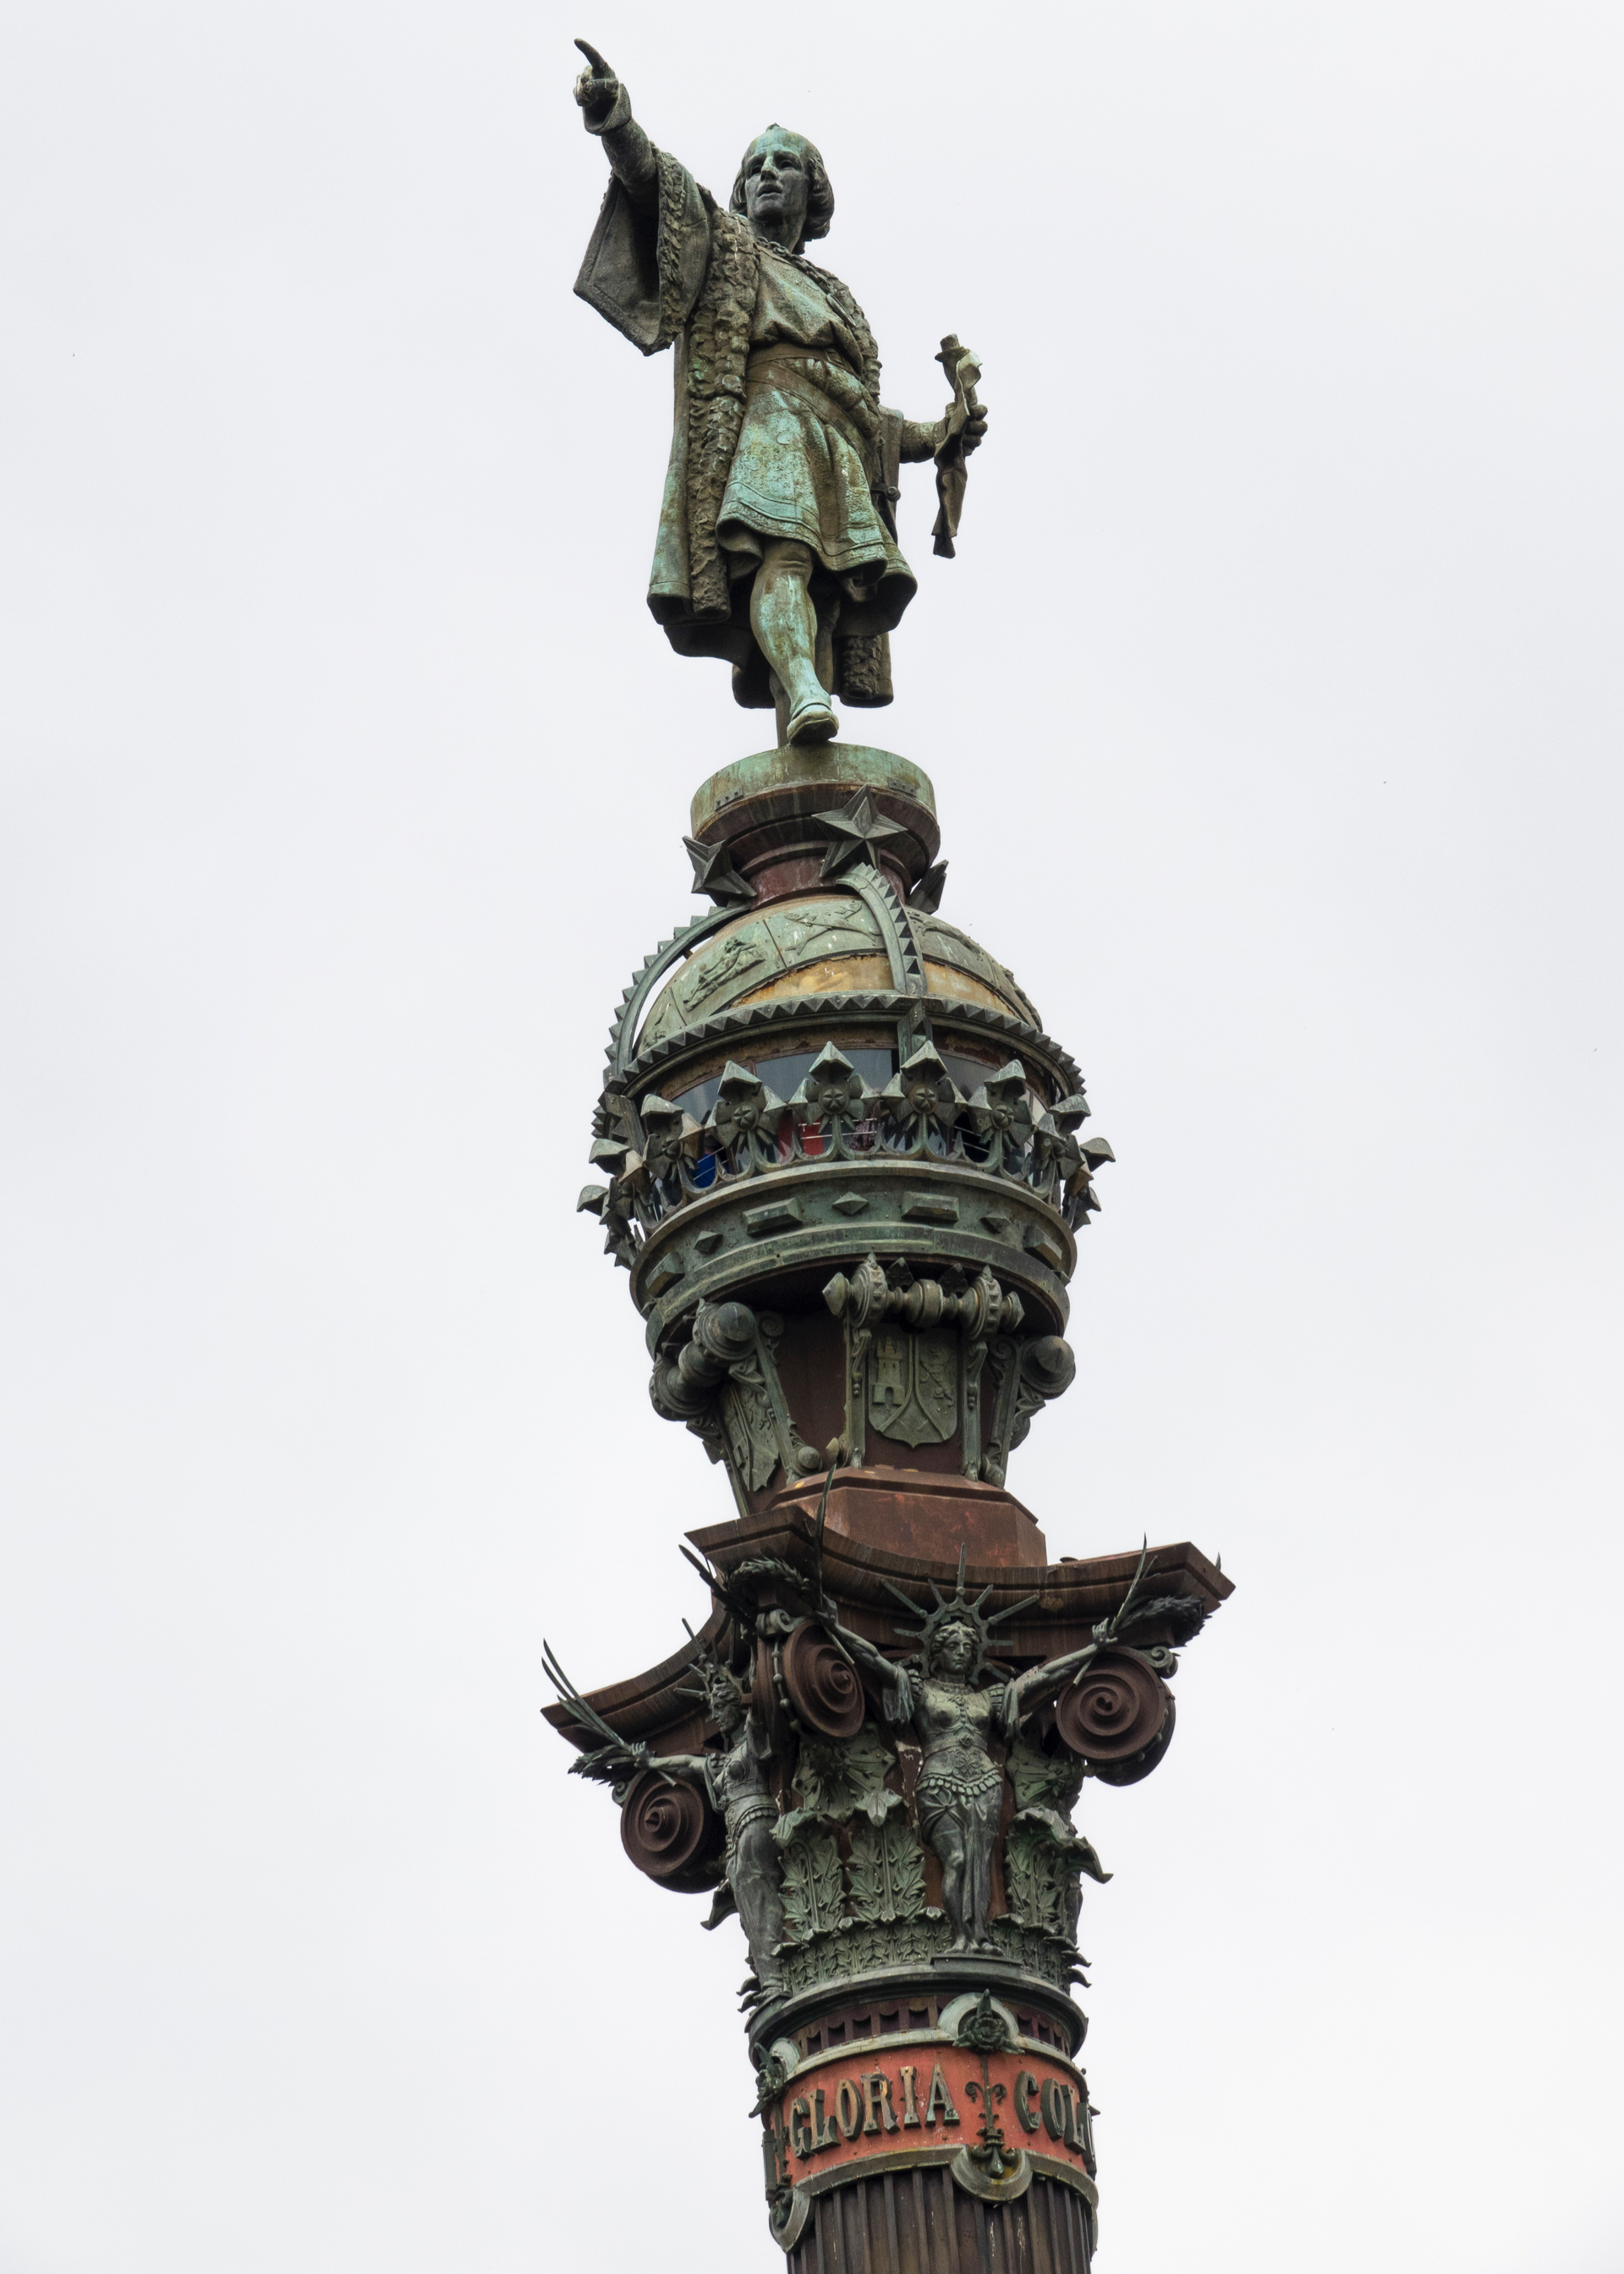 The monument serves as a reminder that Christopher Columbus reported to Queen Isabella I and King Ferdinand V in Barcelona after his first trip to the new continent.